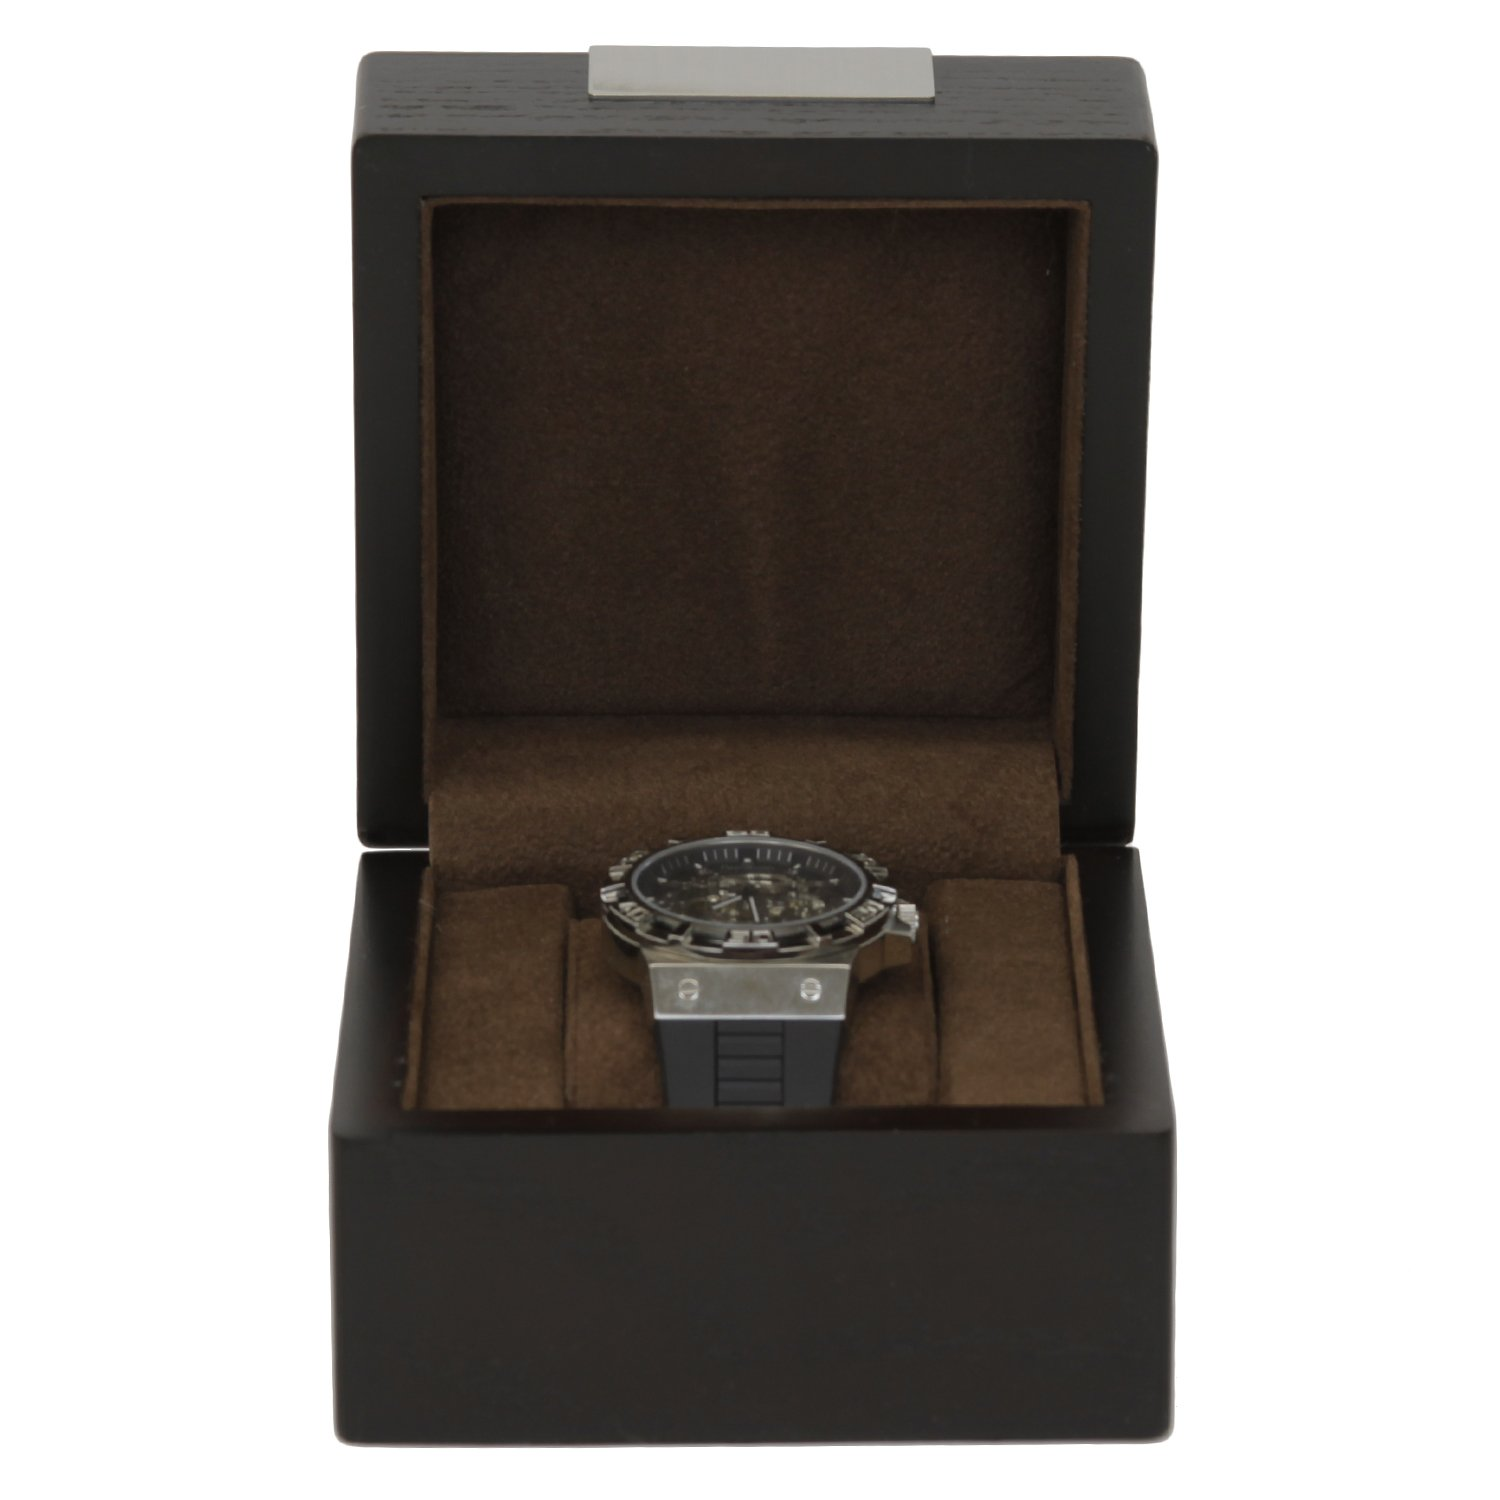 Single Watch Box 1 Extra Large Watch Espresso Brown Wood Finish Removable Cushion